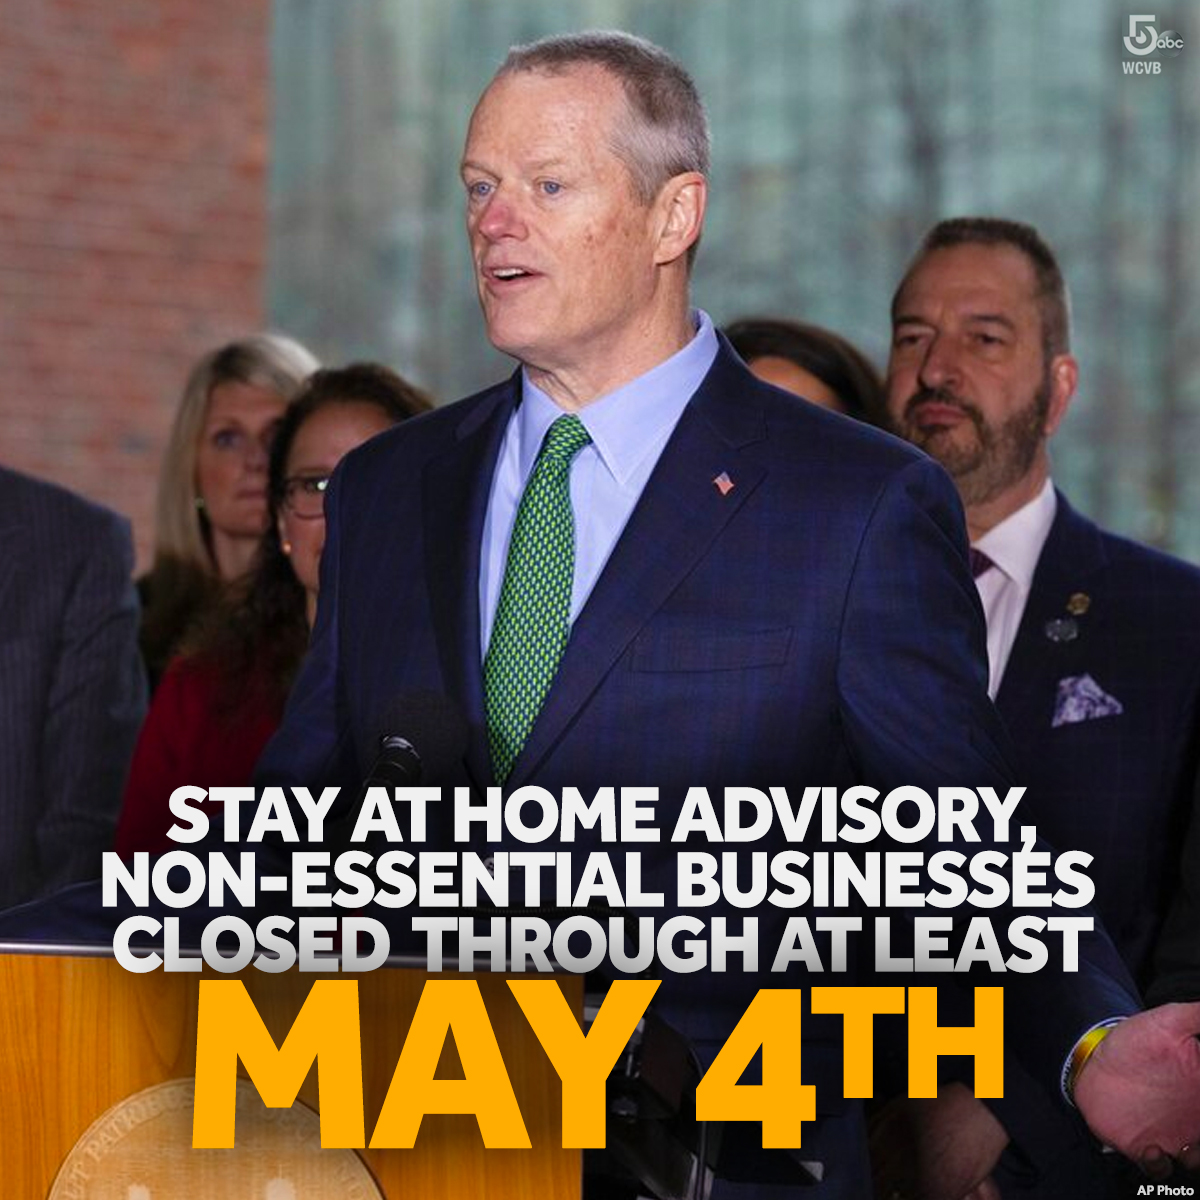 #BREAKING: Mass. Gov. Charlie Baker has EXTENDED the stay at home advisory and order non-essential businesses remain closed through MAY 4th.  https://t.co/3o5JJq9x84 https://t.co/LWUAu0tvc1